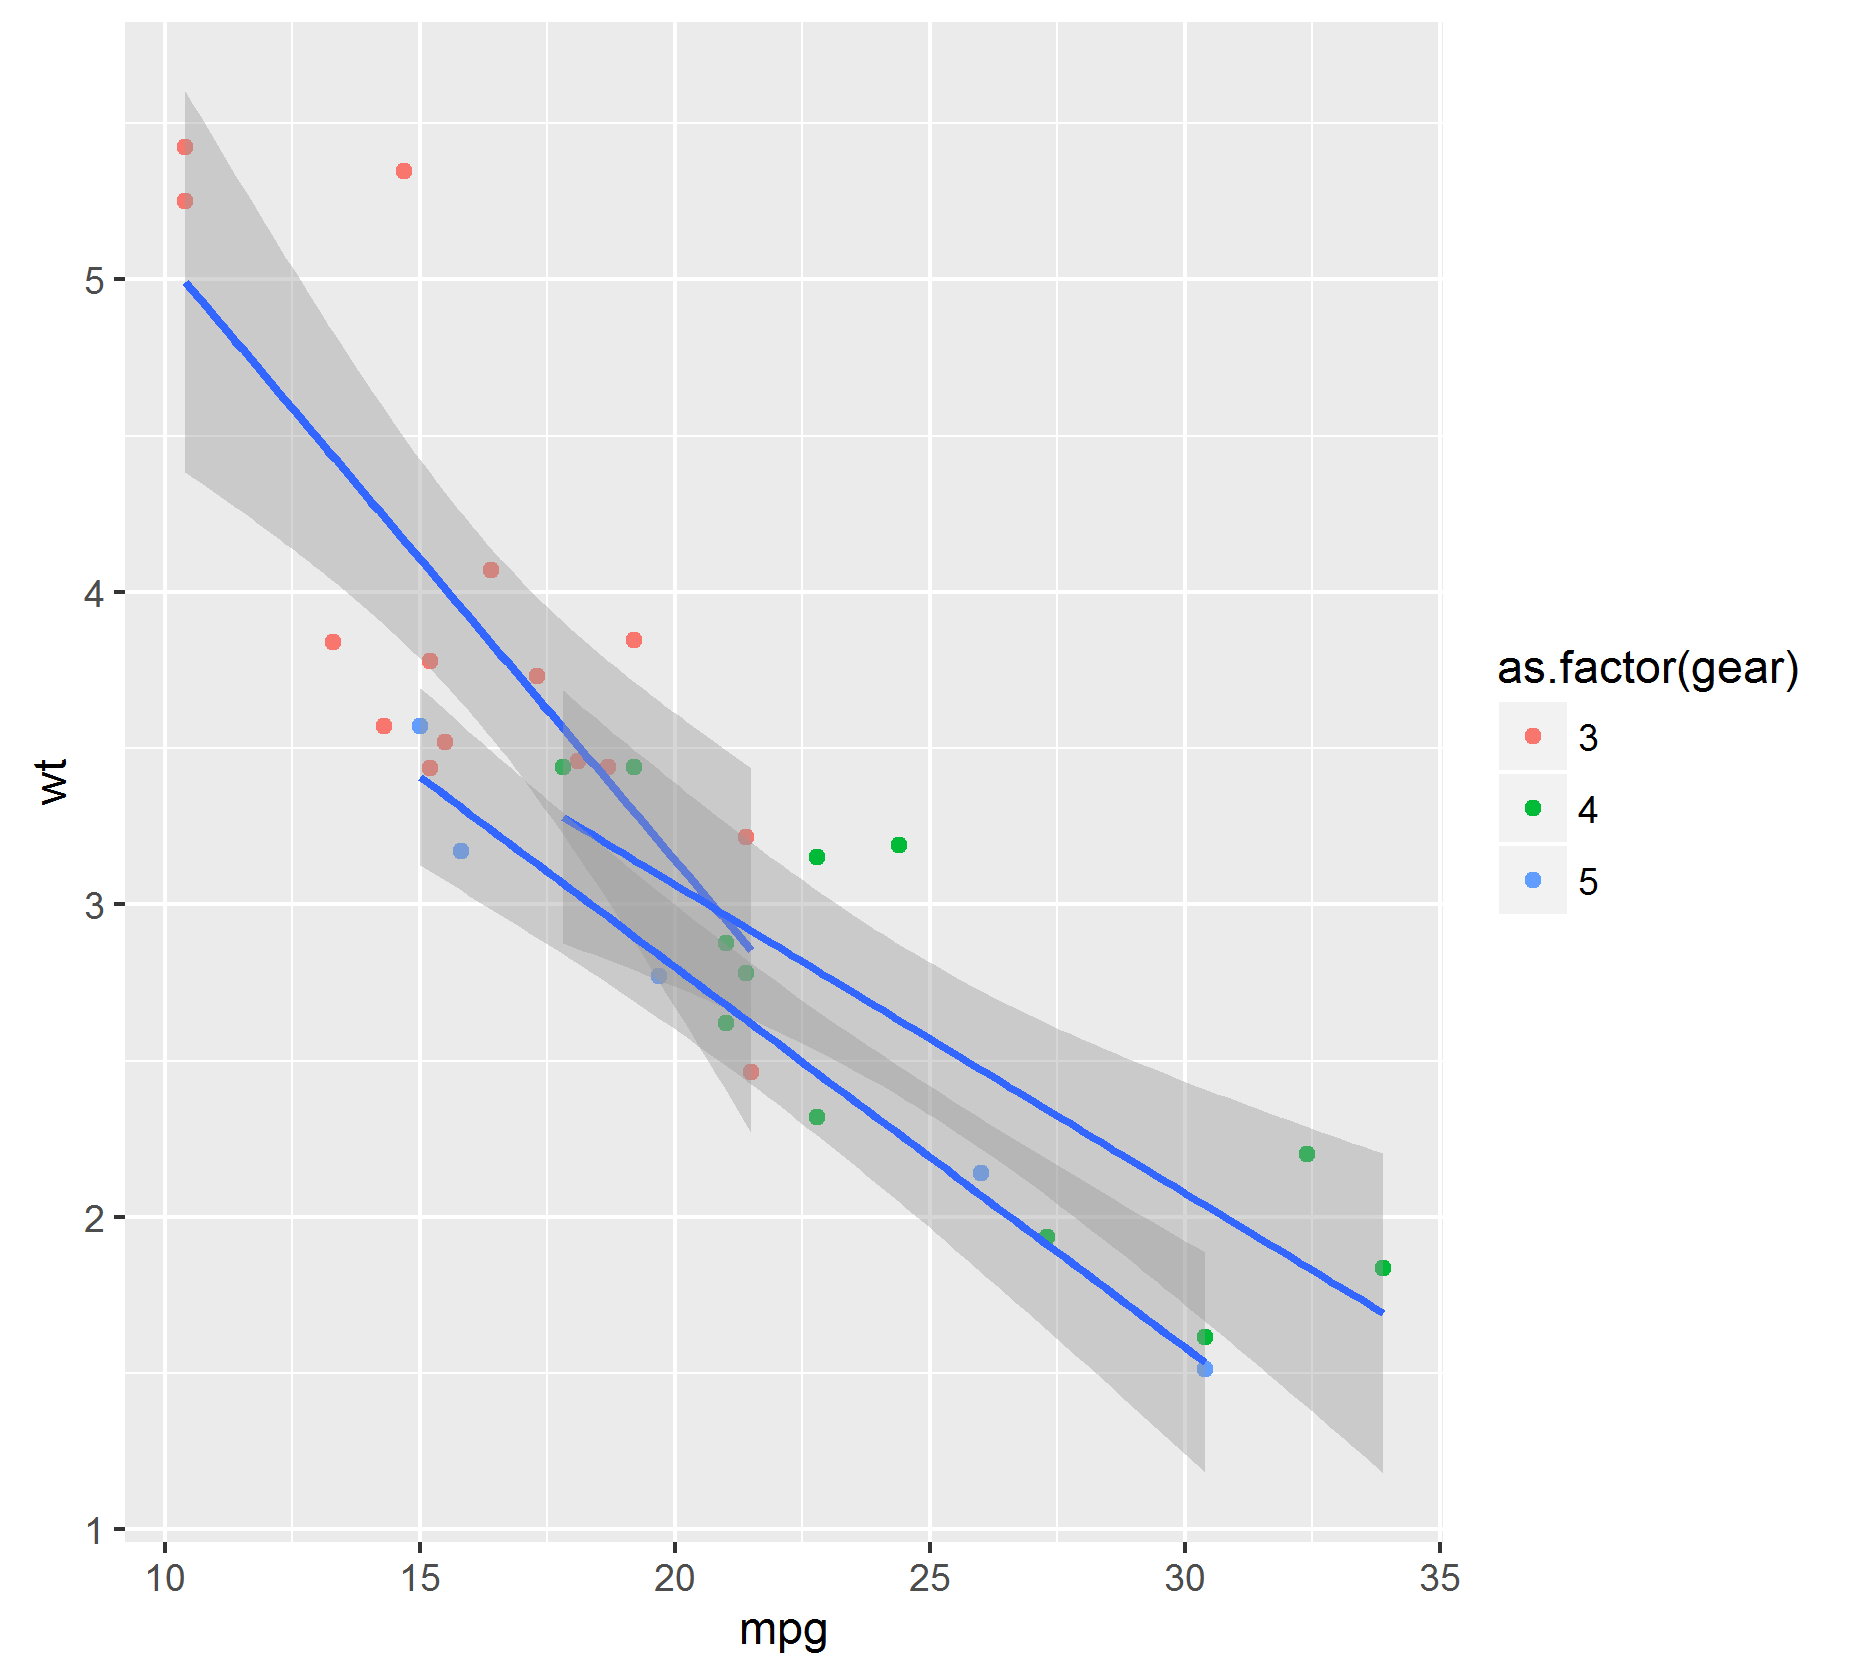 ggplot with group= as.factor gear geom_point geom smooth